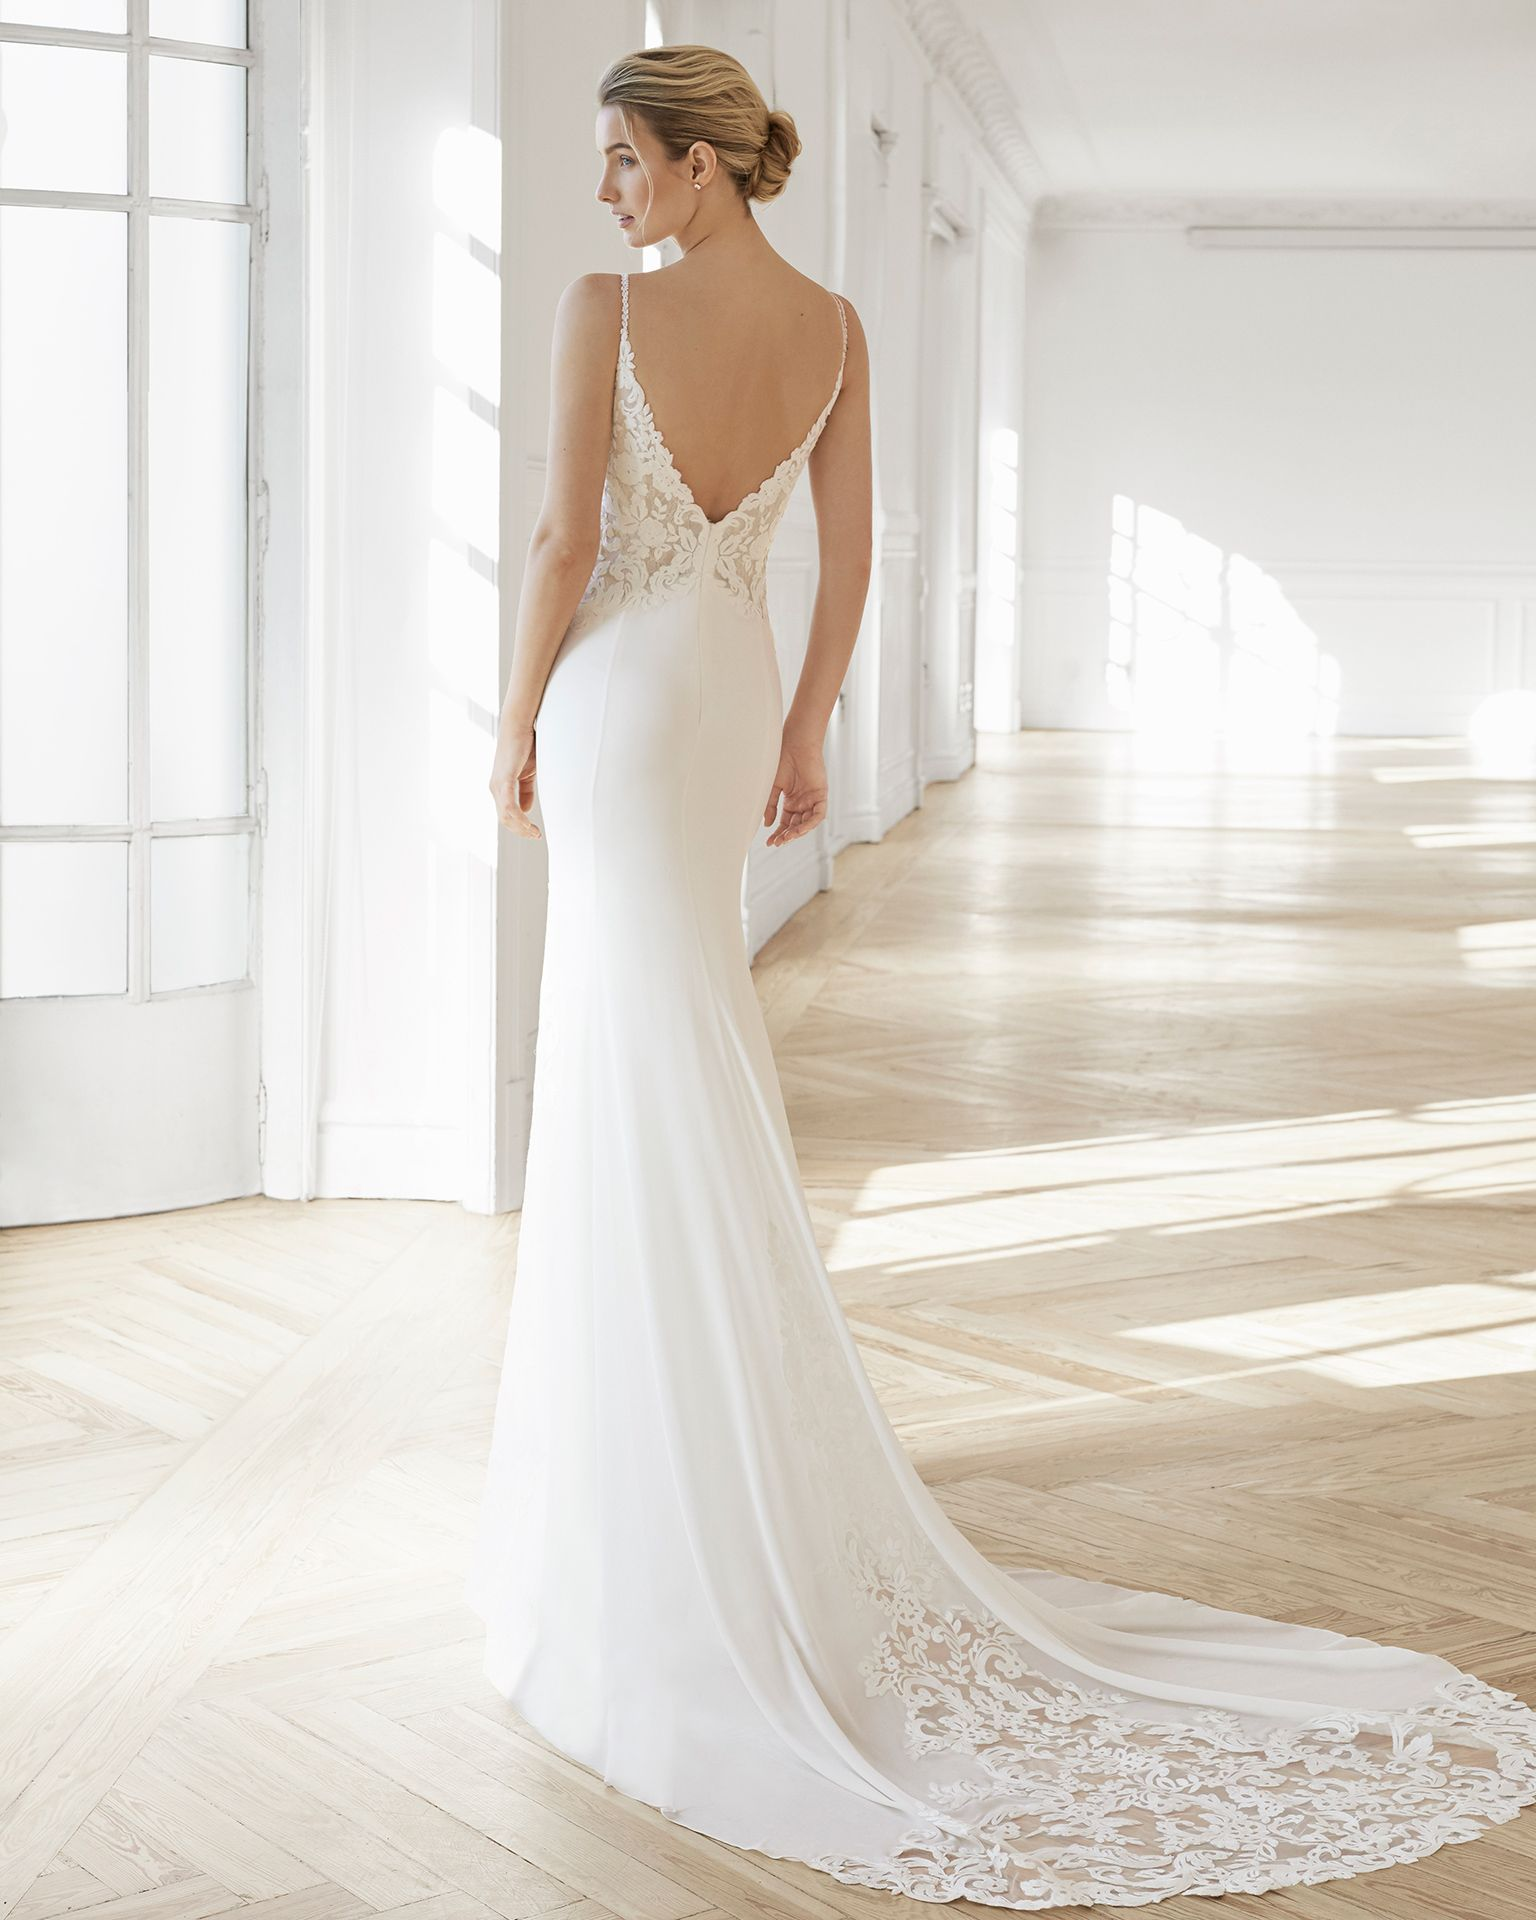 Sheath Style Wedding Dress In Crepe Georgette And Lace V Neckline